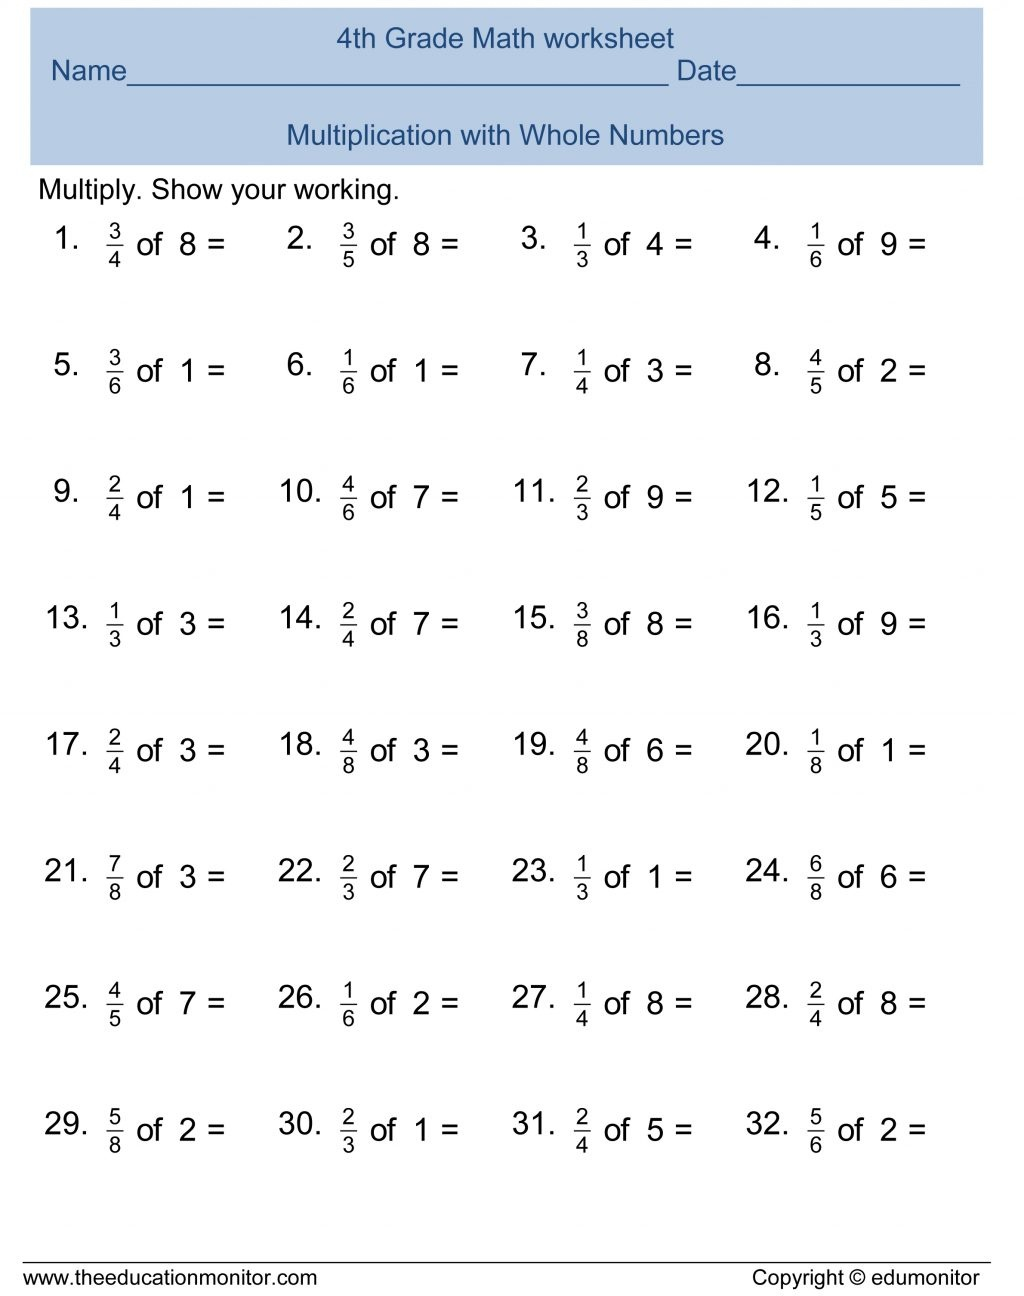 Fourth Grade Math Worksheets Multiplication Free Printable - Free Printable Math Worksheets For 4Th Grade